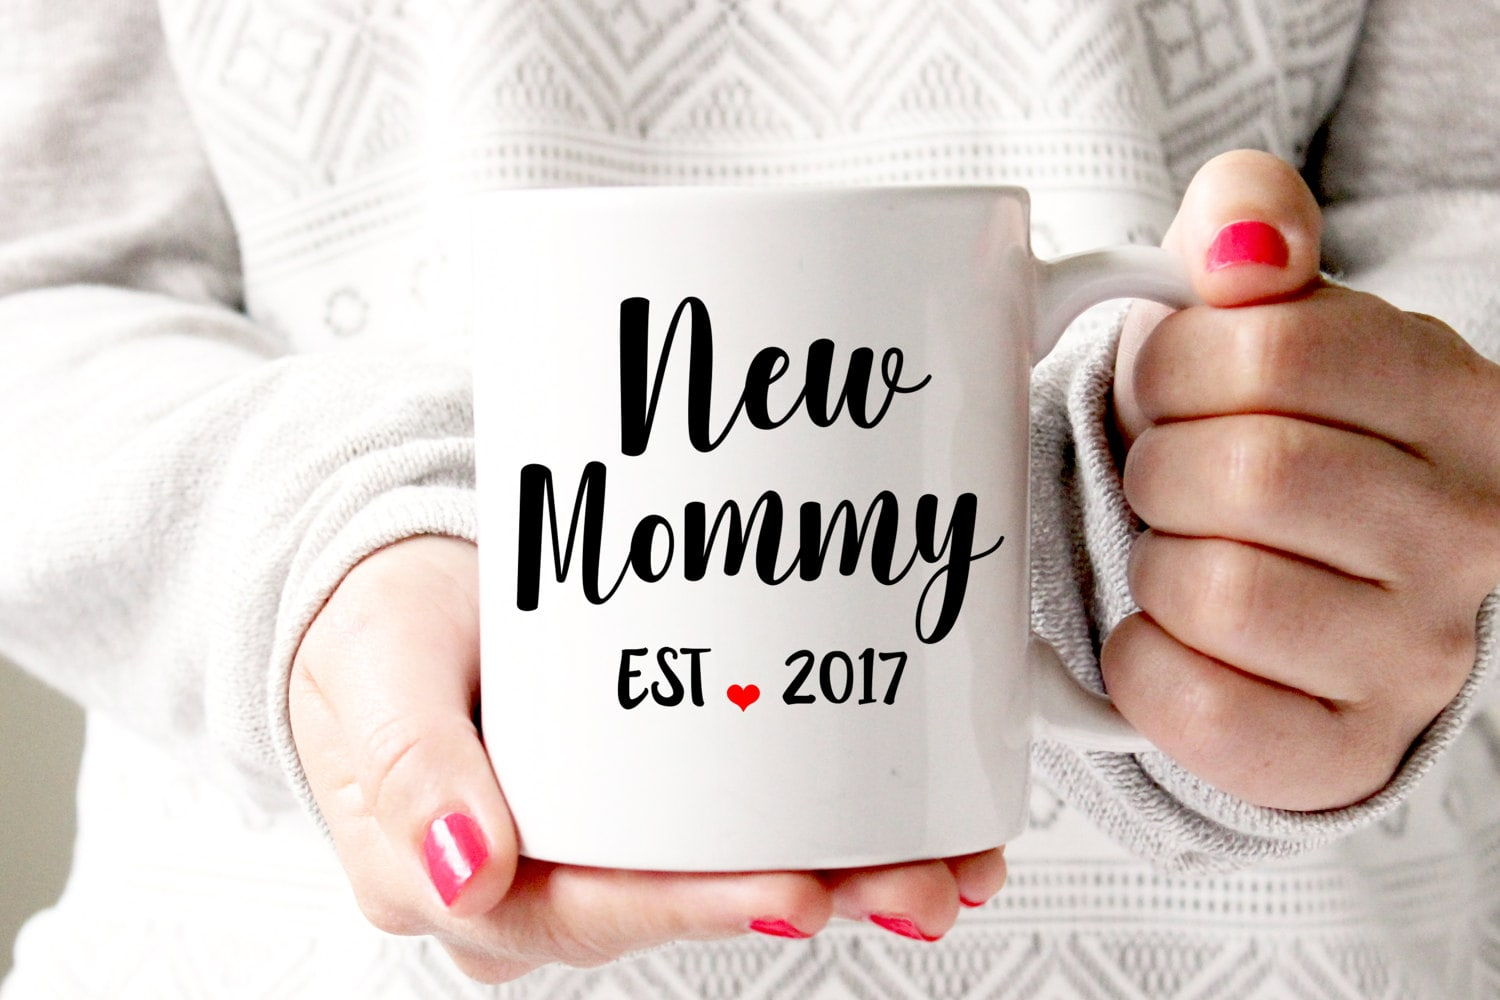 Sentimental New Mom Gifts From Dad Ideas for After Baby's Birth - Elfster Blog